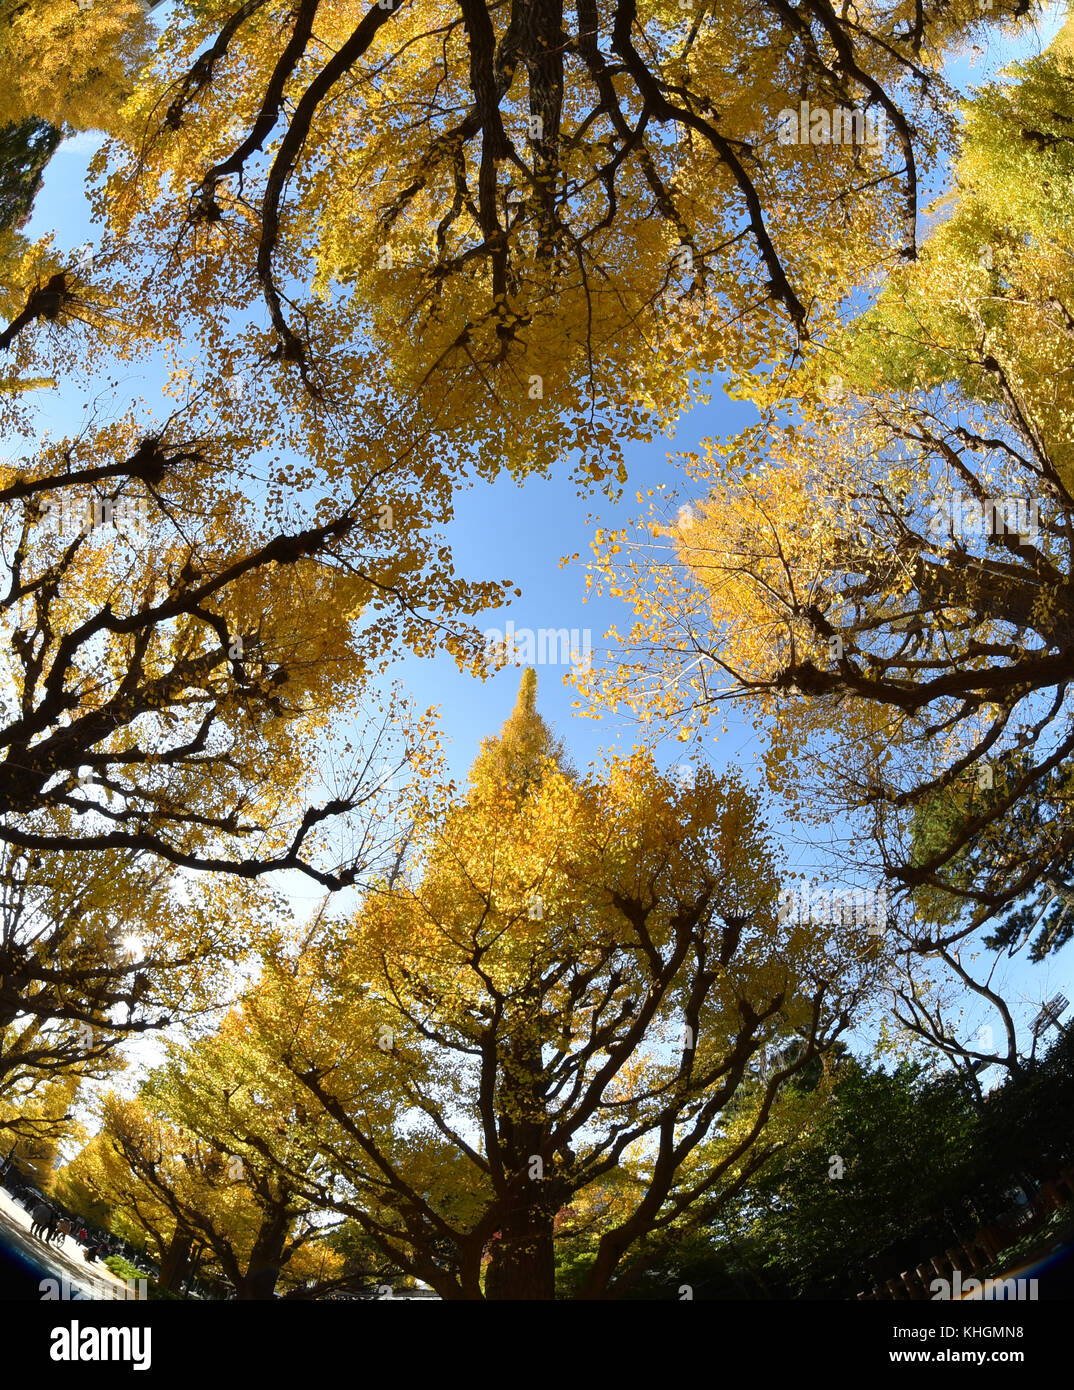 Tokyo, Japan. 17th Nov, 2017. Rows of trees with bright yellow ginkgo leaves strike brilliant contrast against the - Stock Image